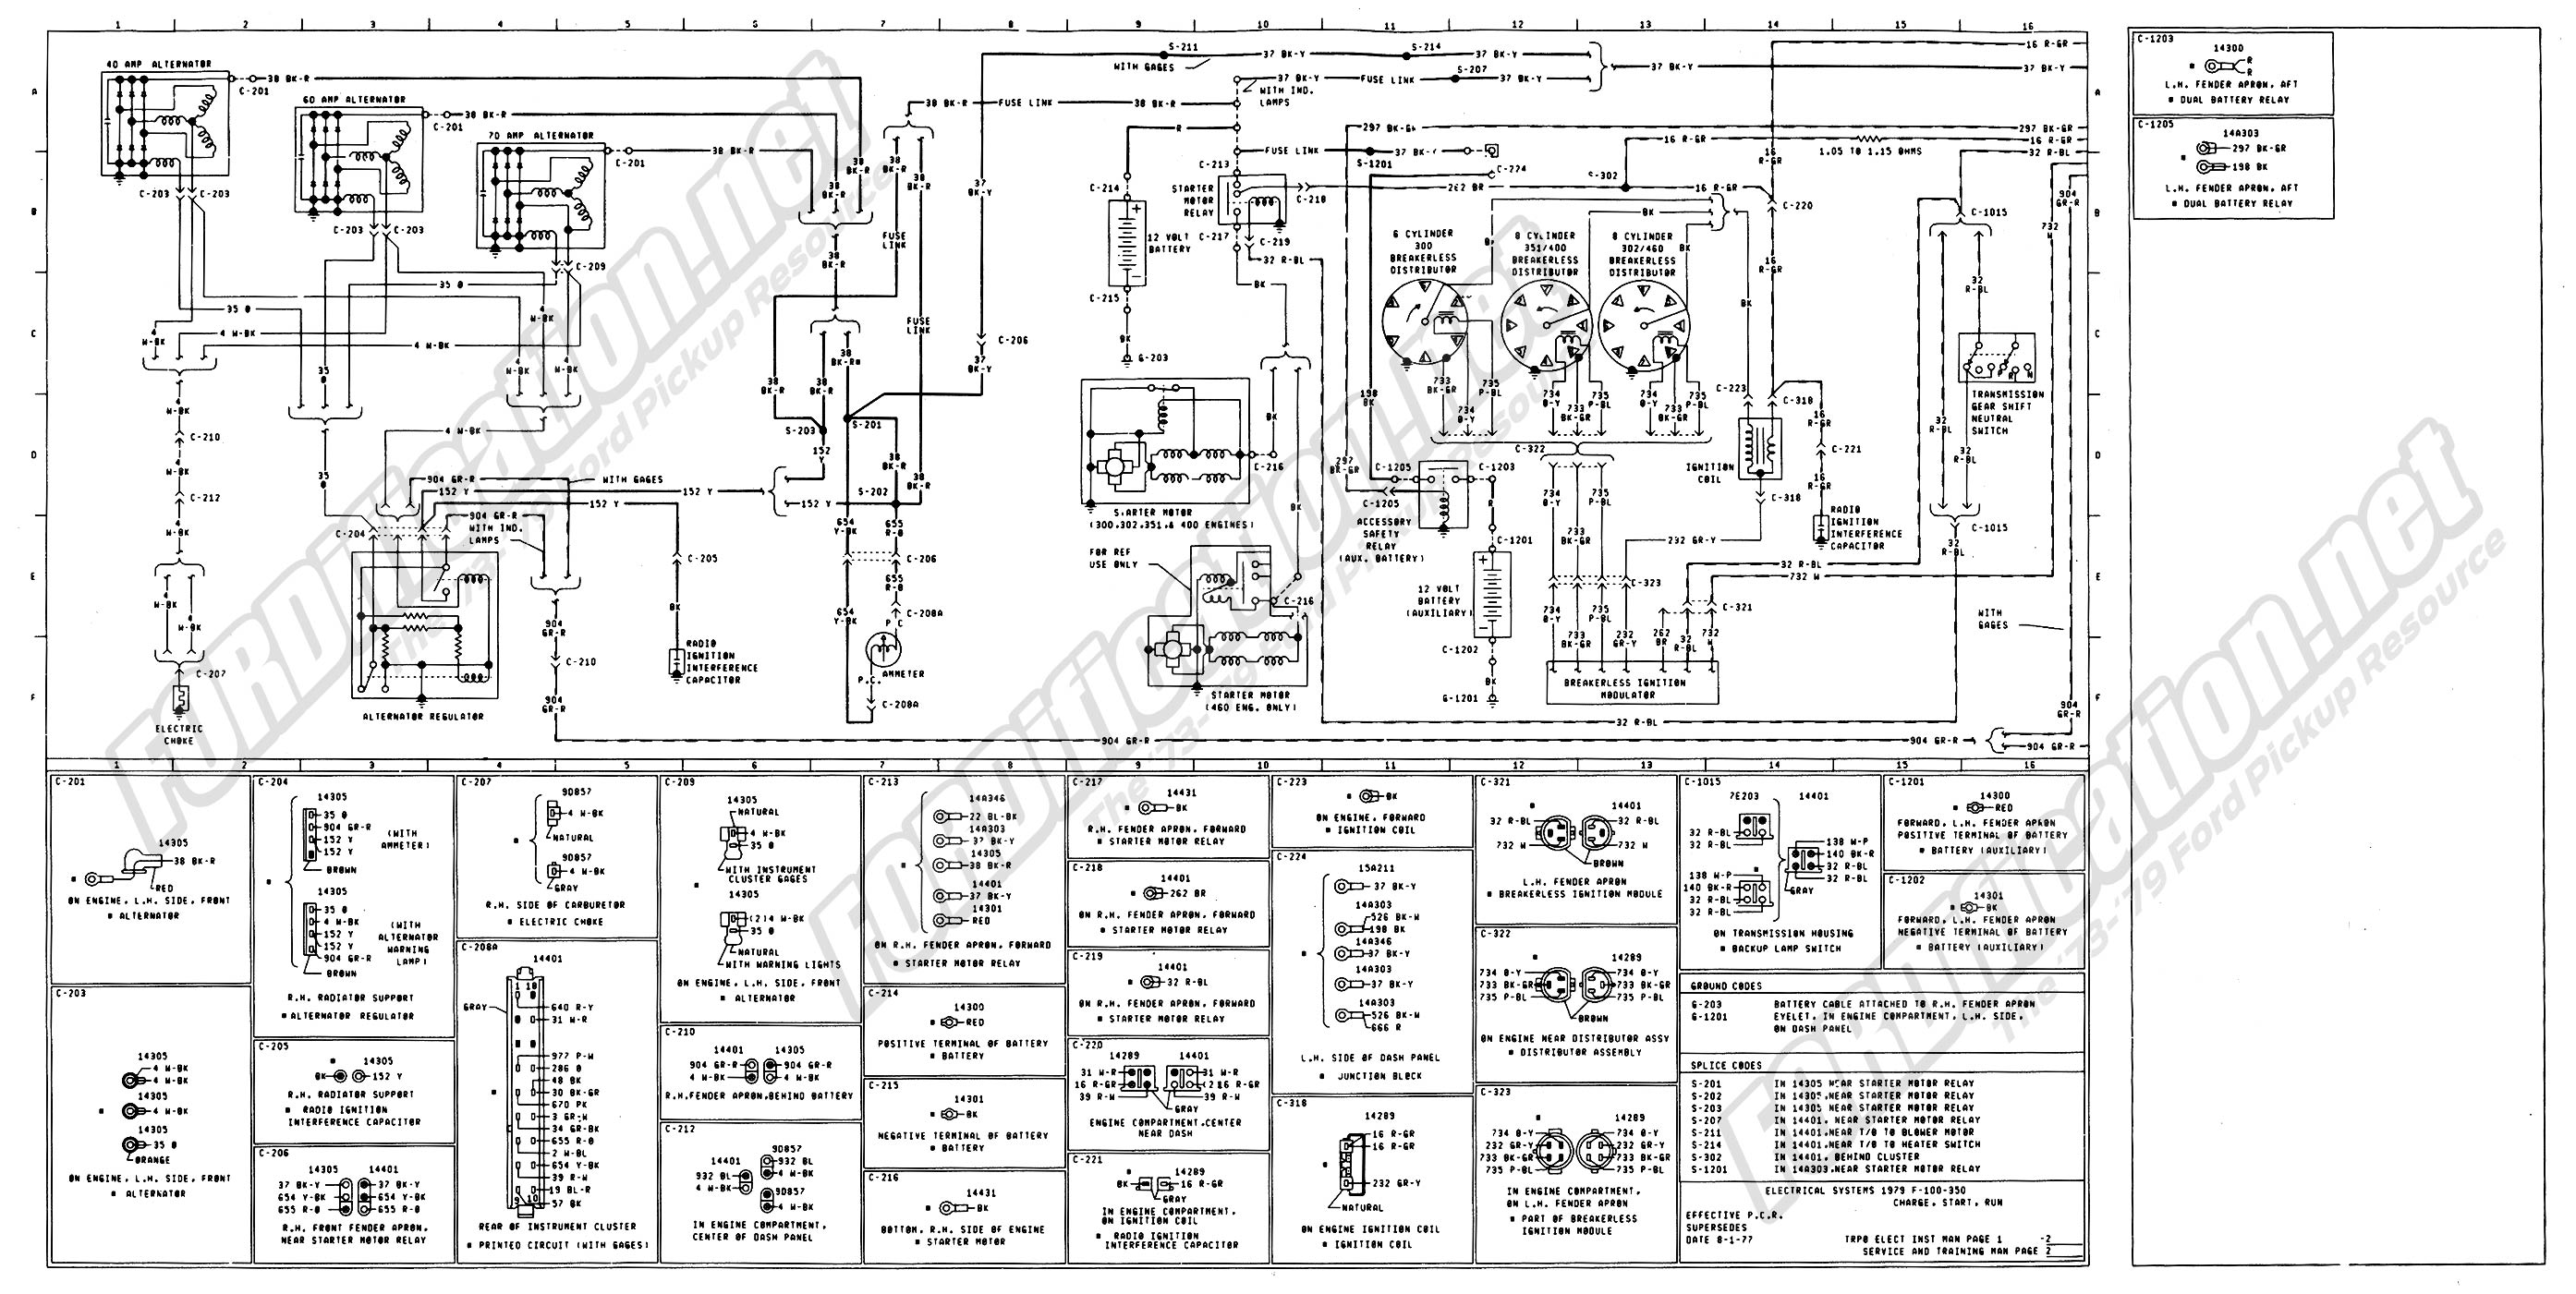 wiring_79master_2of9 1979 ford f150 wiring diagram 1979 ford f150 fuse diagram \u2022 wiring 2014 Ford F-250 Super Duty at eliteediting.co